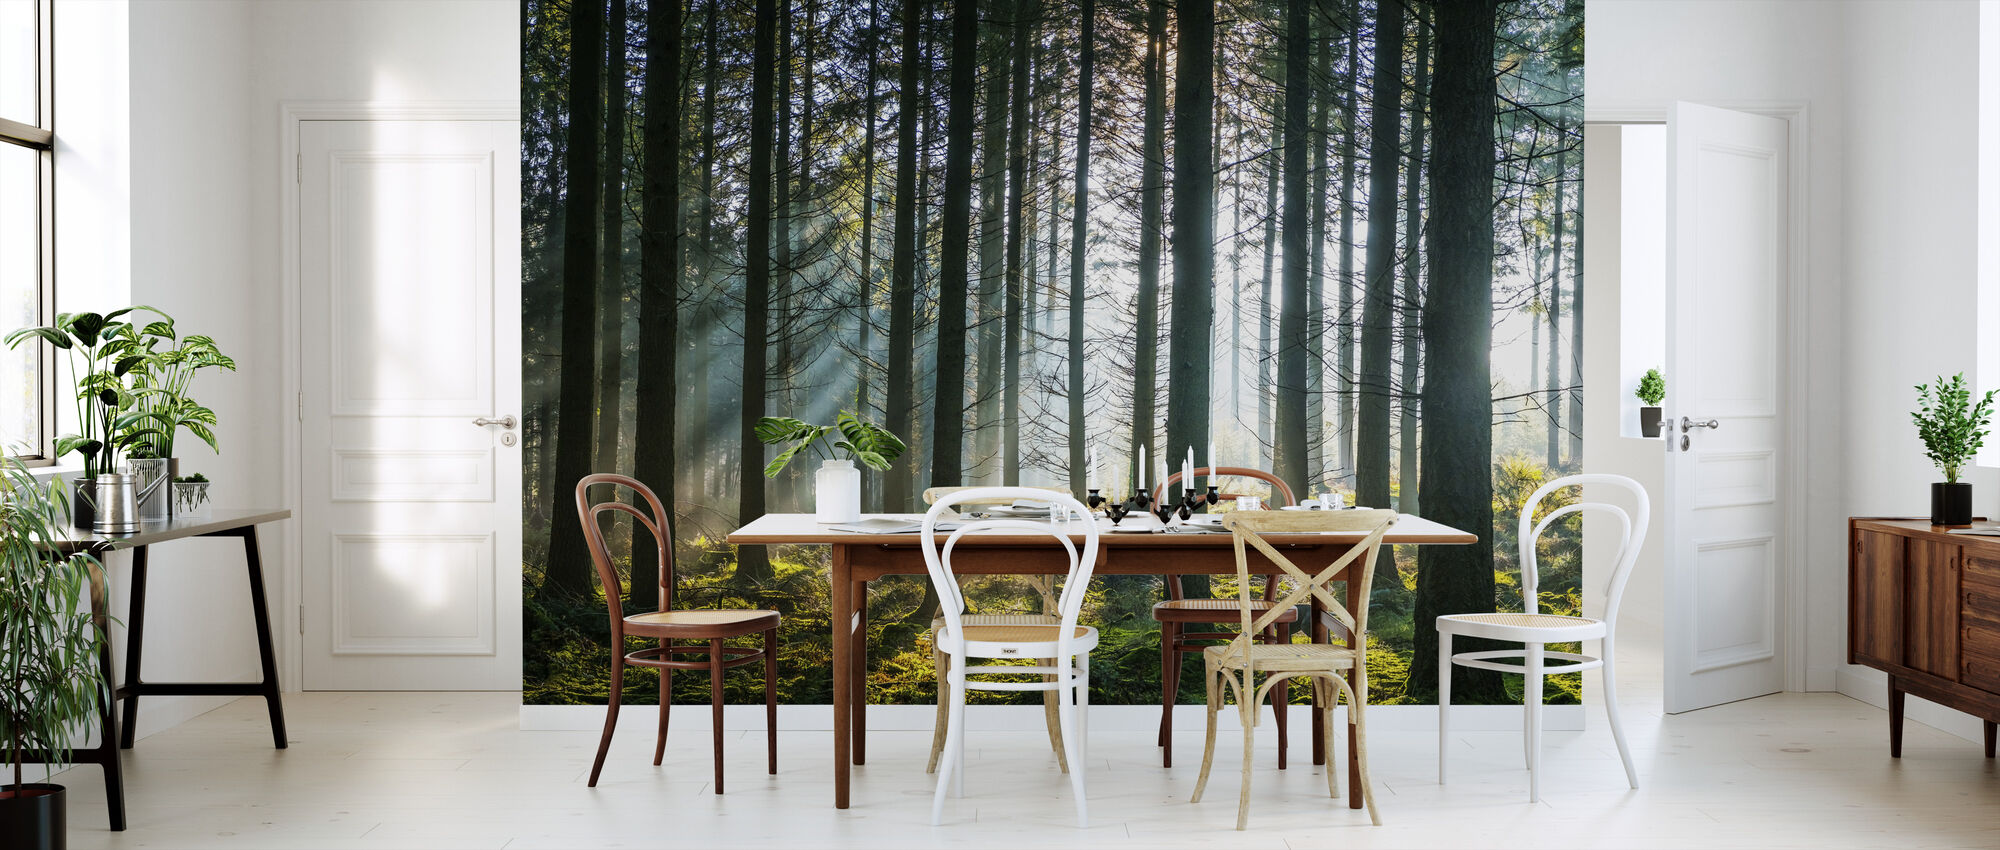 Misty Pine Forest - Wallpaper - Kitchen